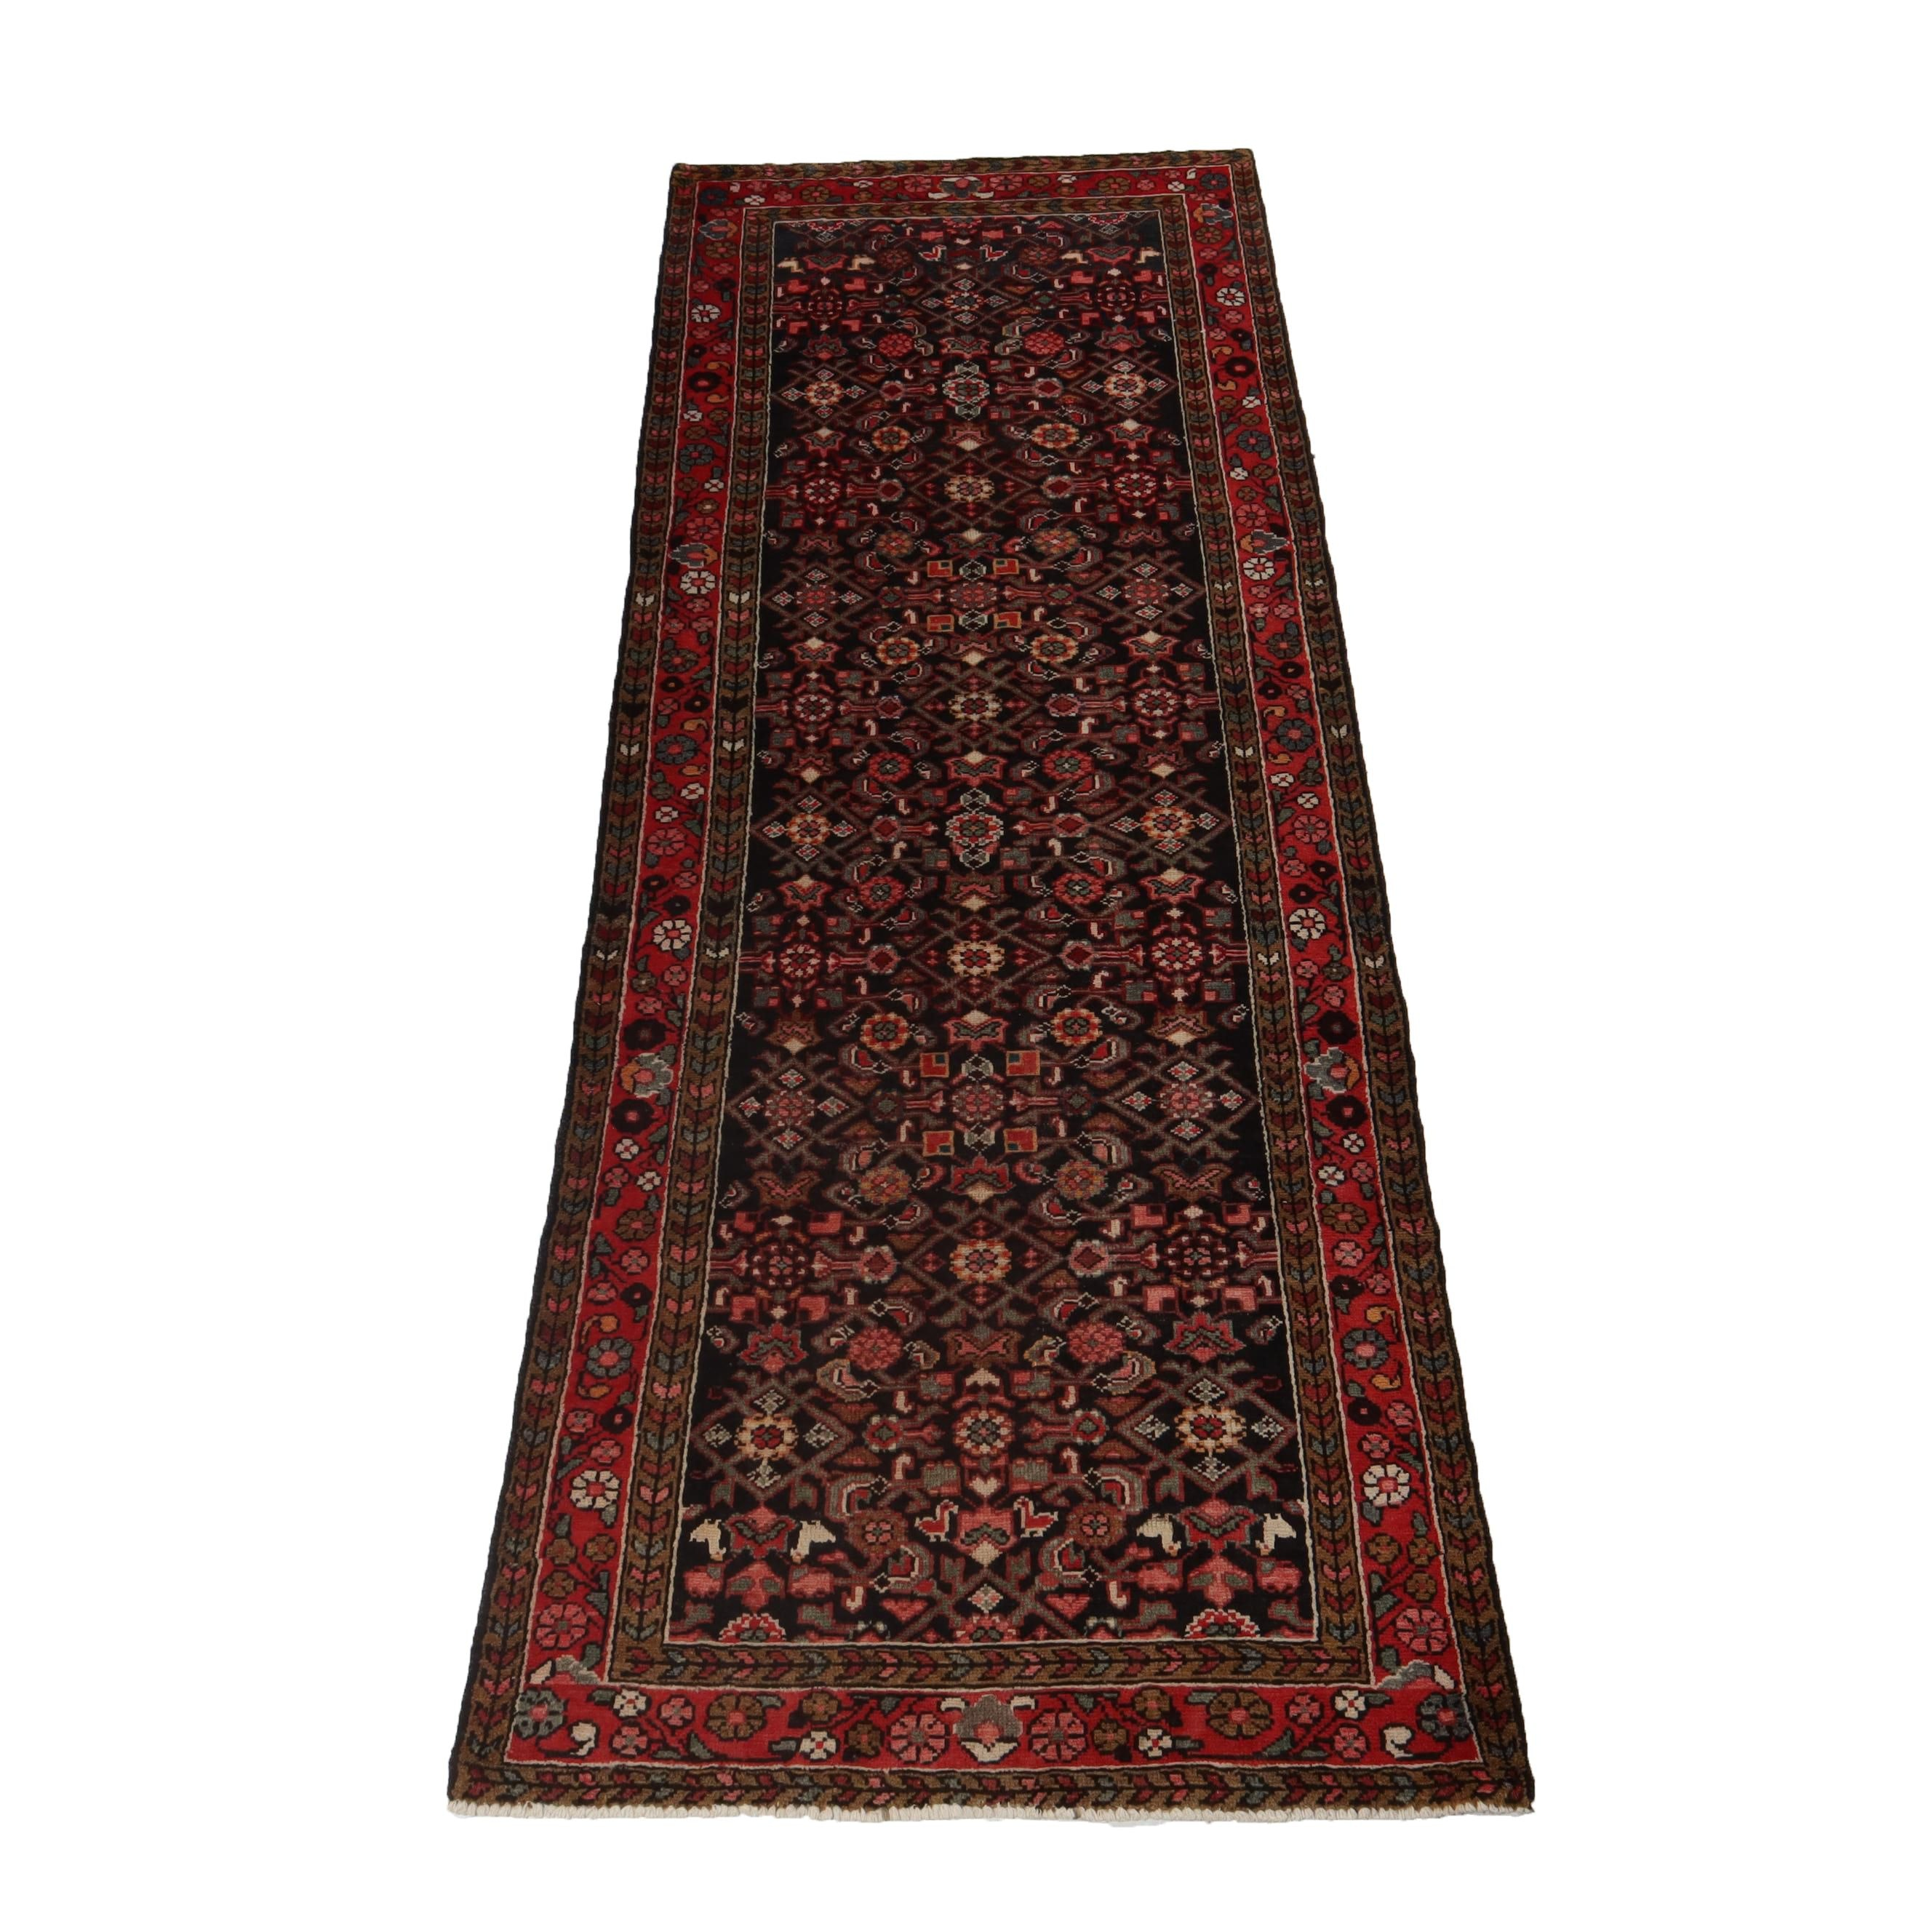 3'10 x 9'6 Hand-Knotted Persian Mahal Wool Long Rug, Circa 1950